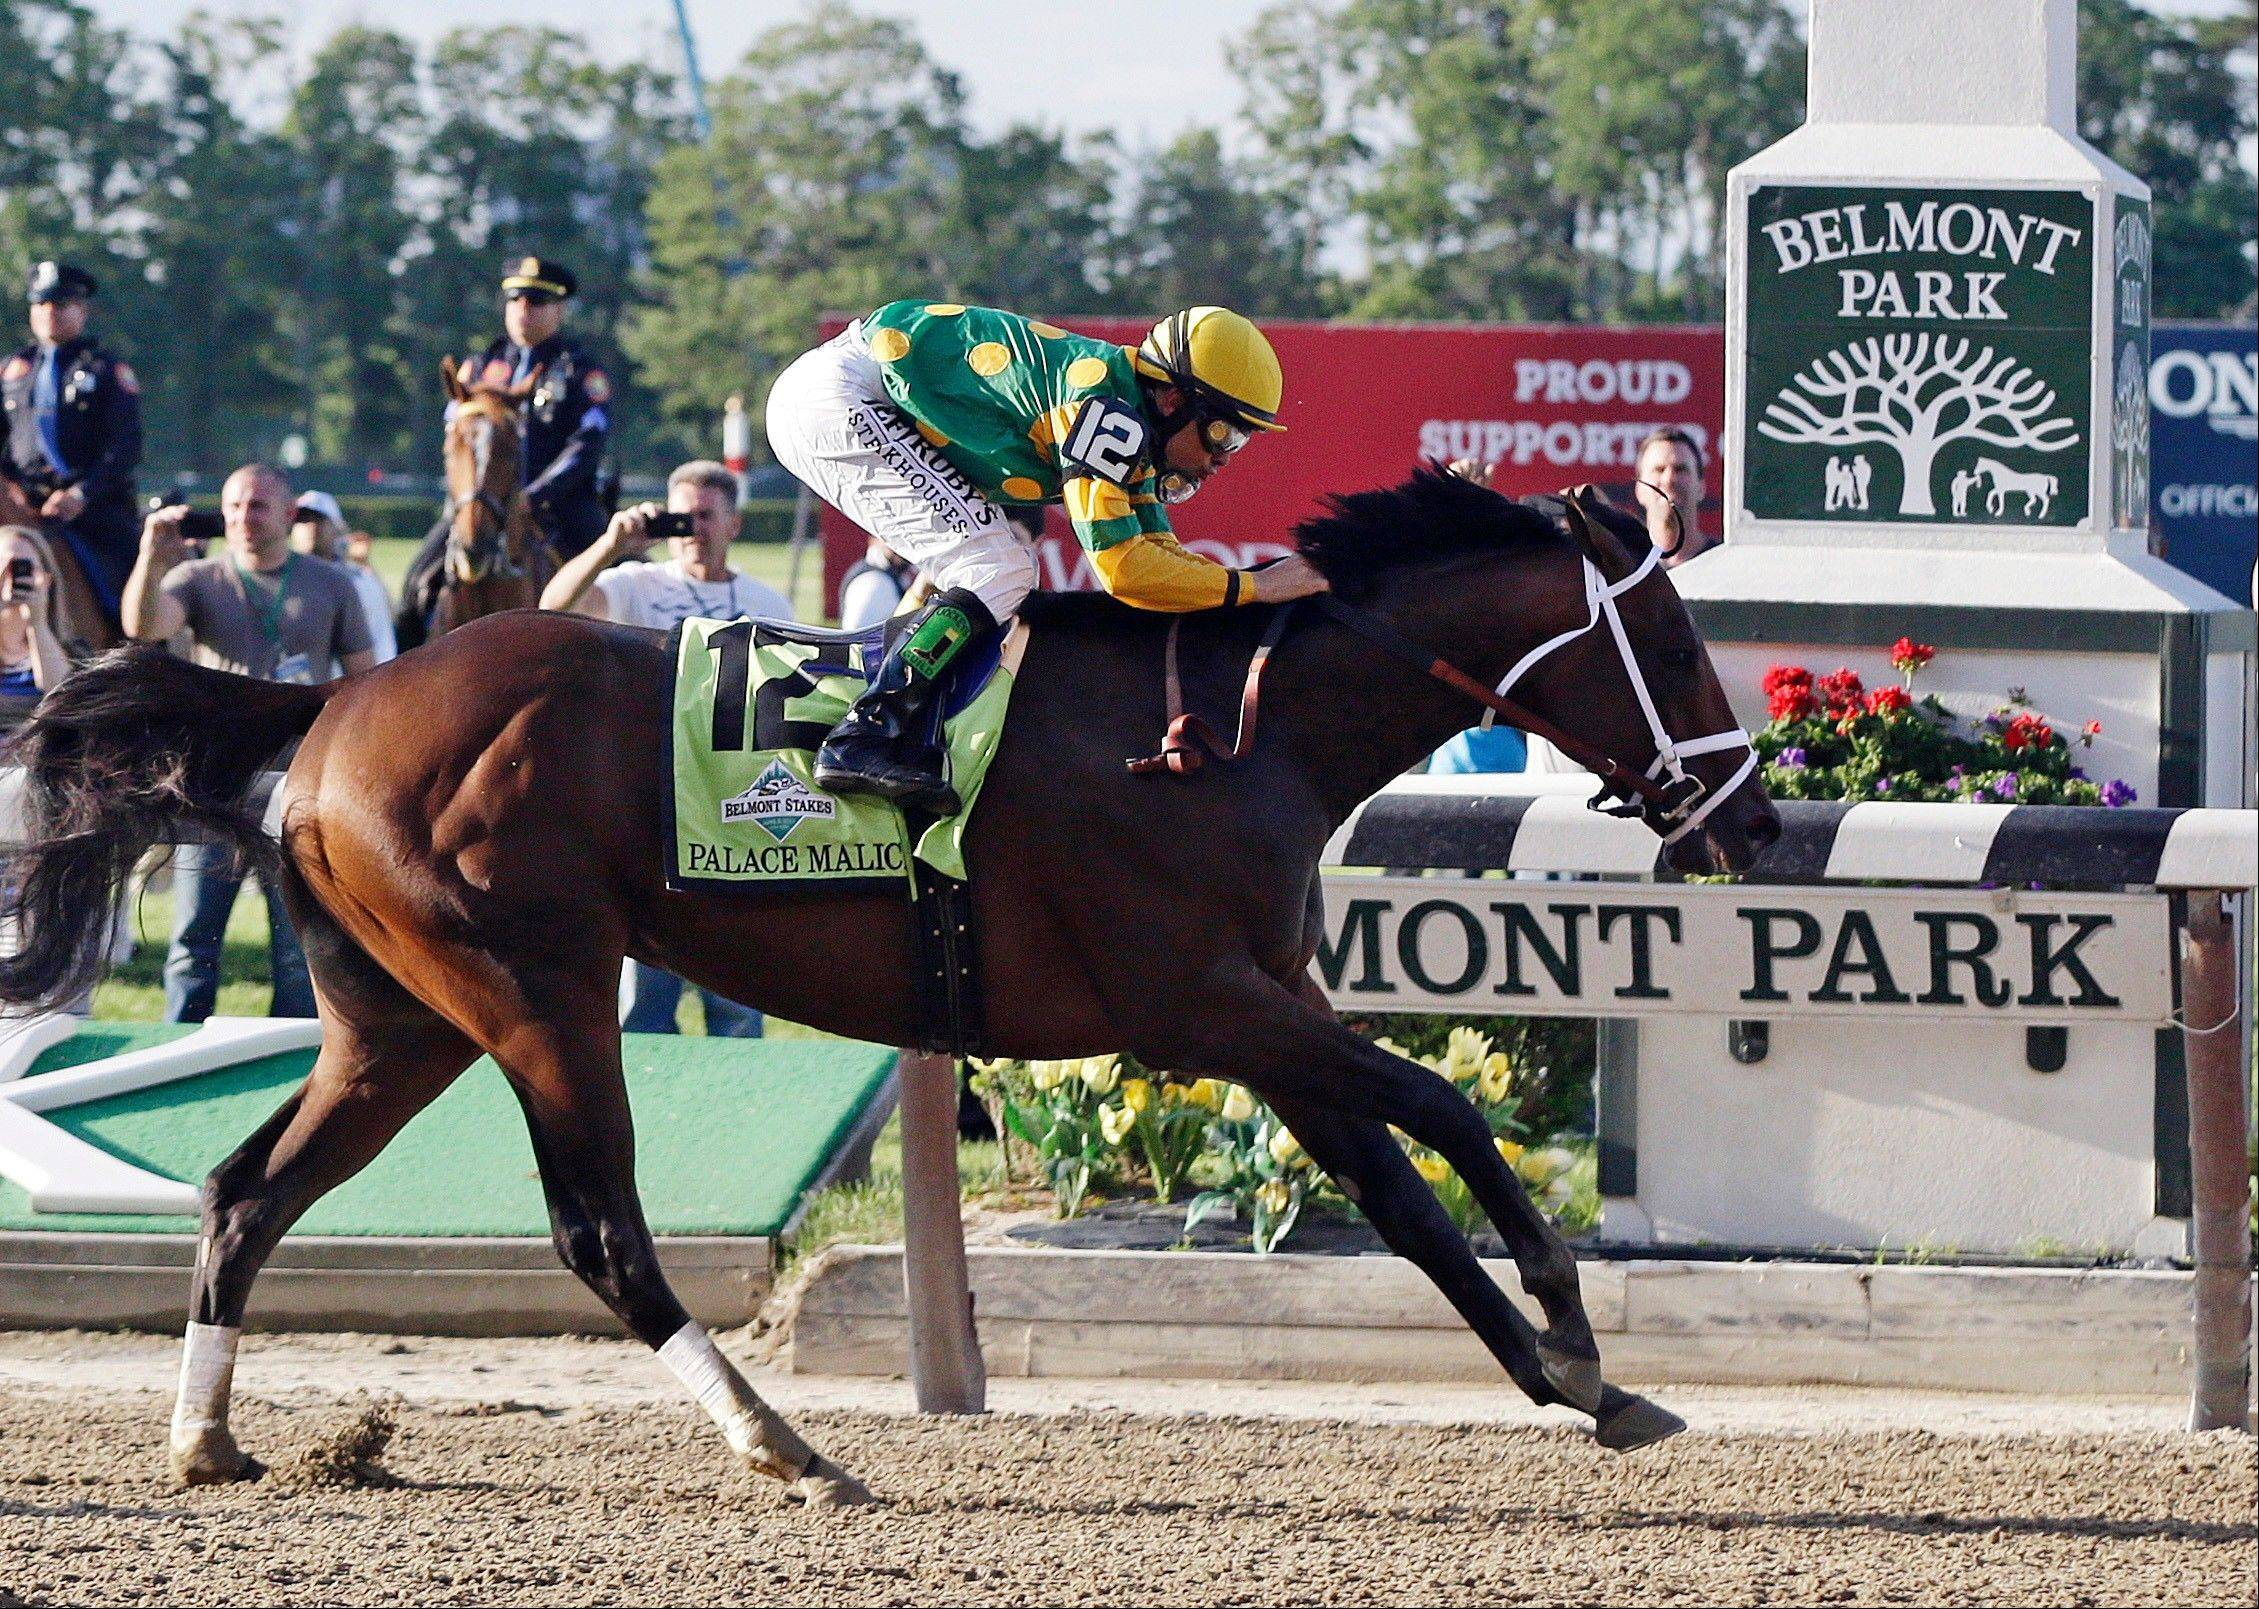 Palace Malice, ridden by jockey Mike Smith, crosses the finish line to win the the 145th Belmont Stakes horse race at Belmont Park Saturday, June 8, 2013, in Elmont, N.Y. (AP Photo/Frank Franklin II)